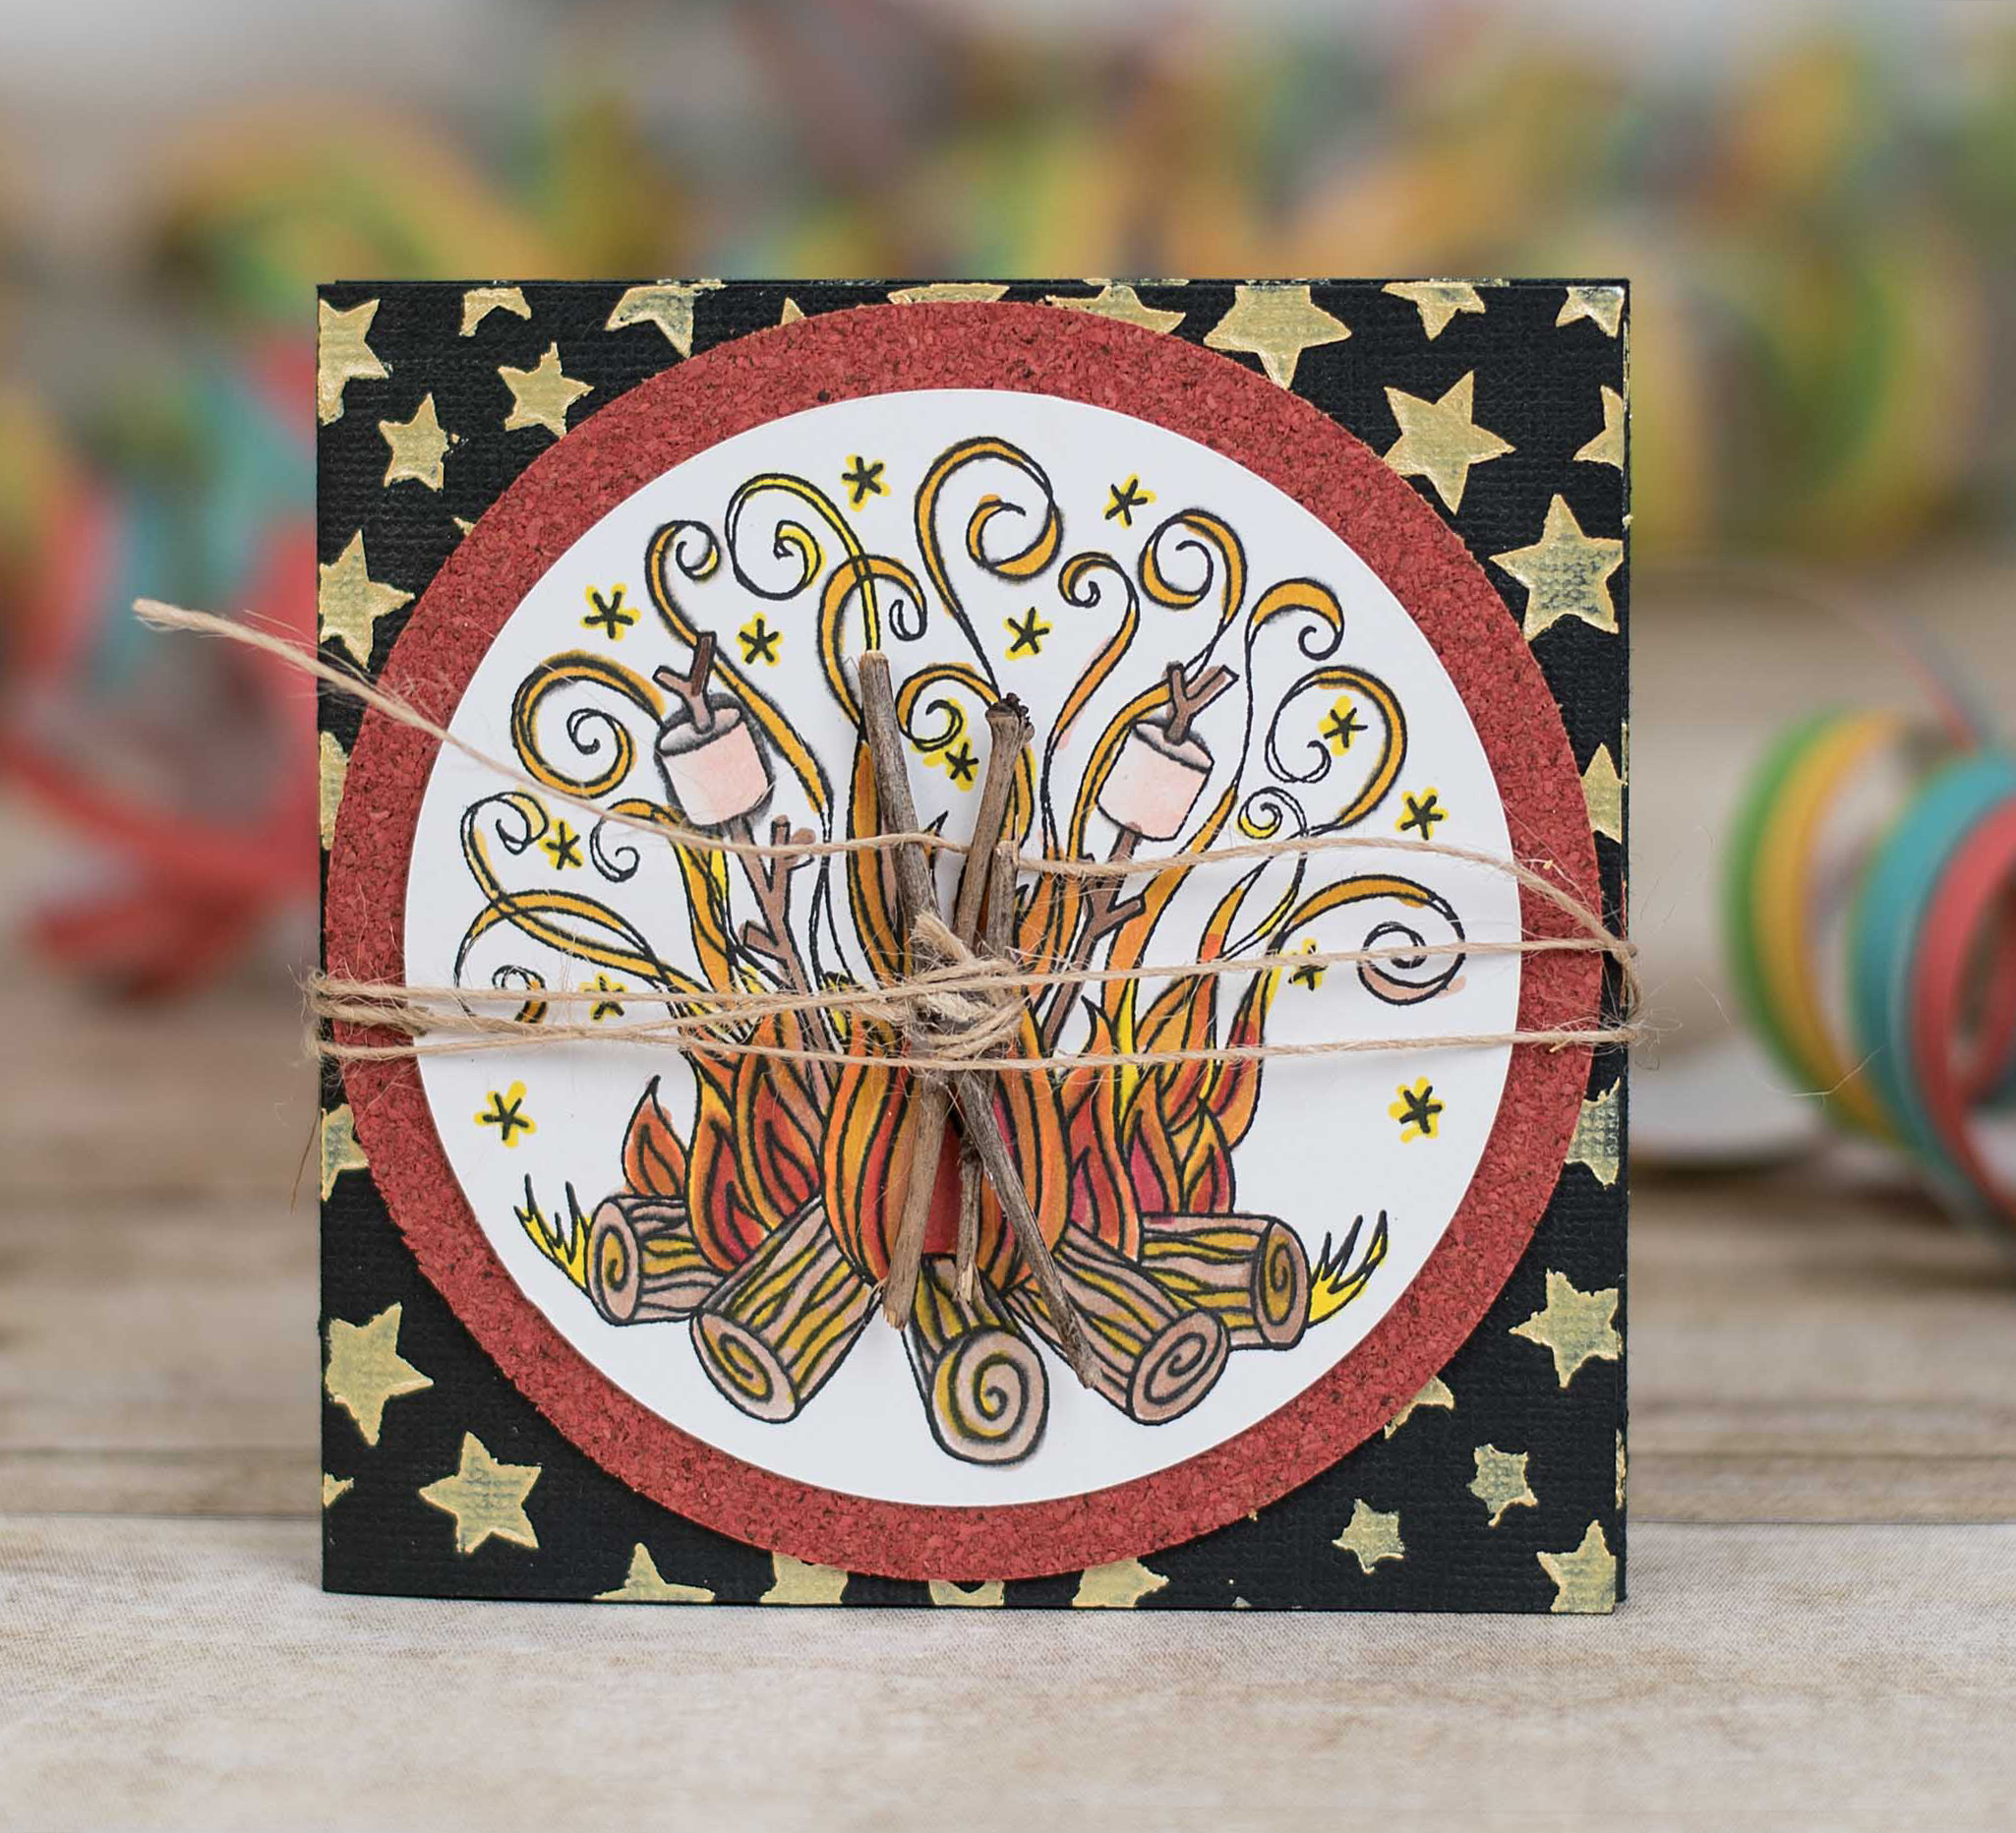 Campfire Stamp used to create a fun invitation featuring Impression Obsession designed by Kim Gowdy